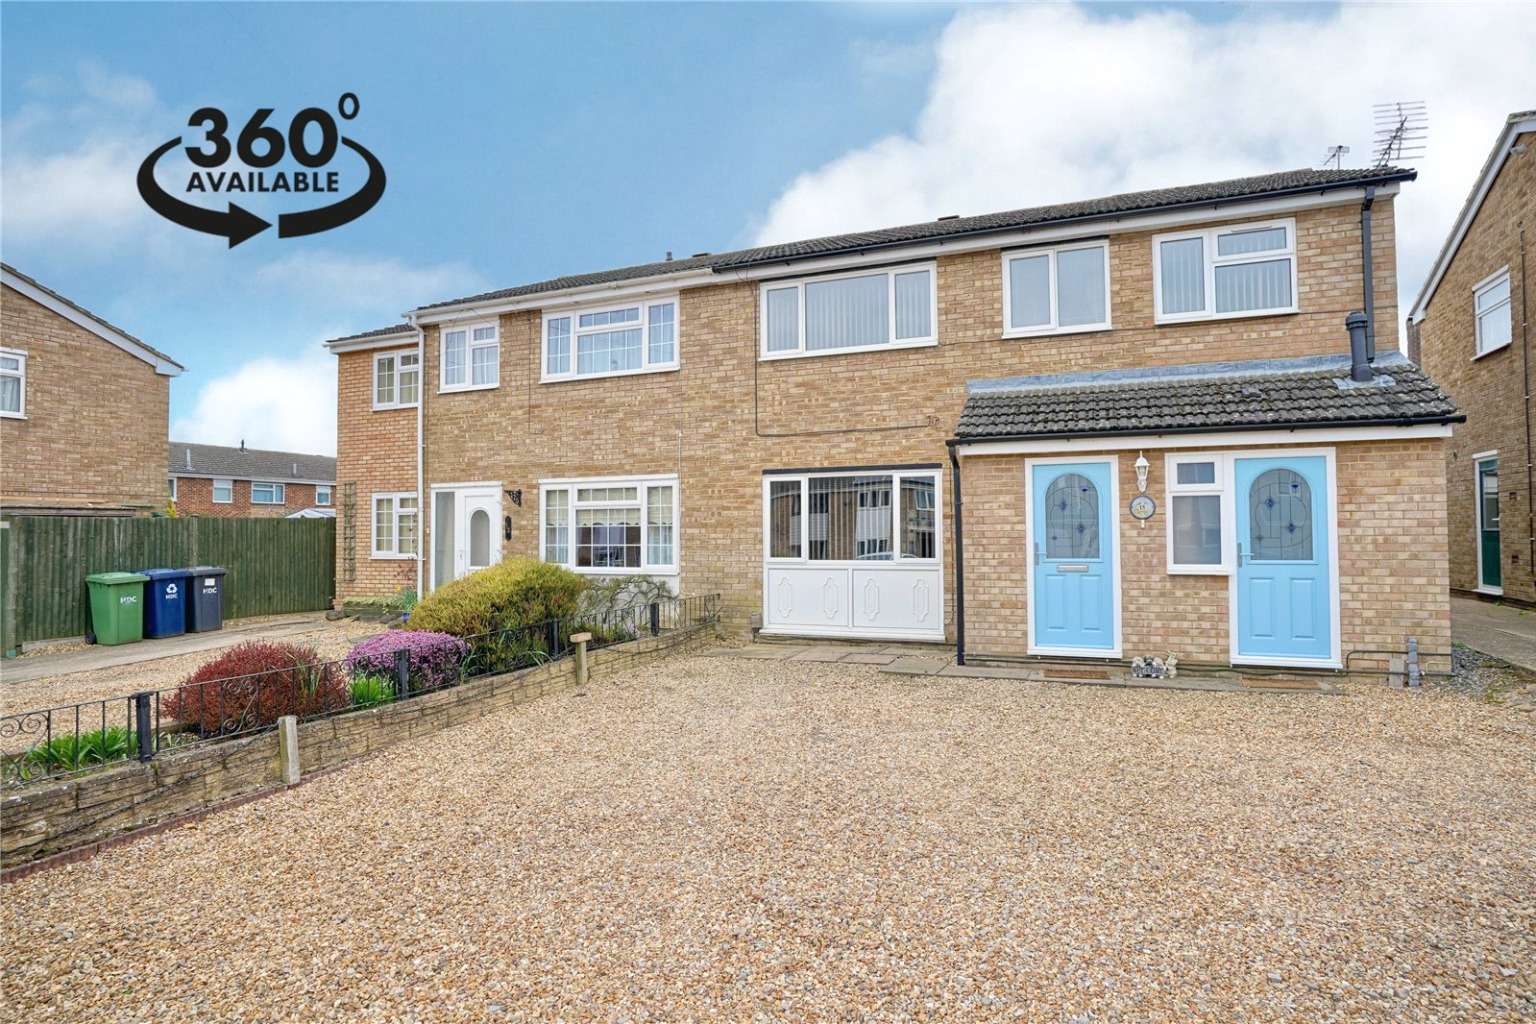 4 bed semi-detached house for sale in Kenilworth Close, St. Neots  - Property Image 1